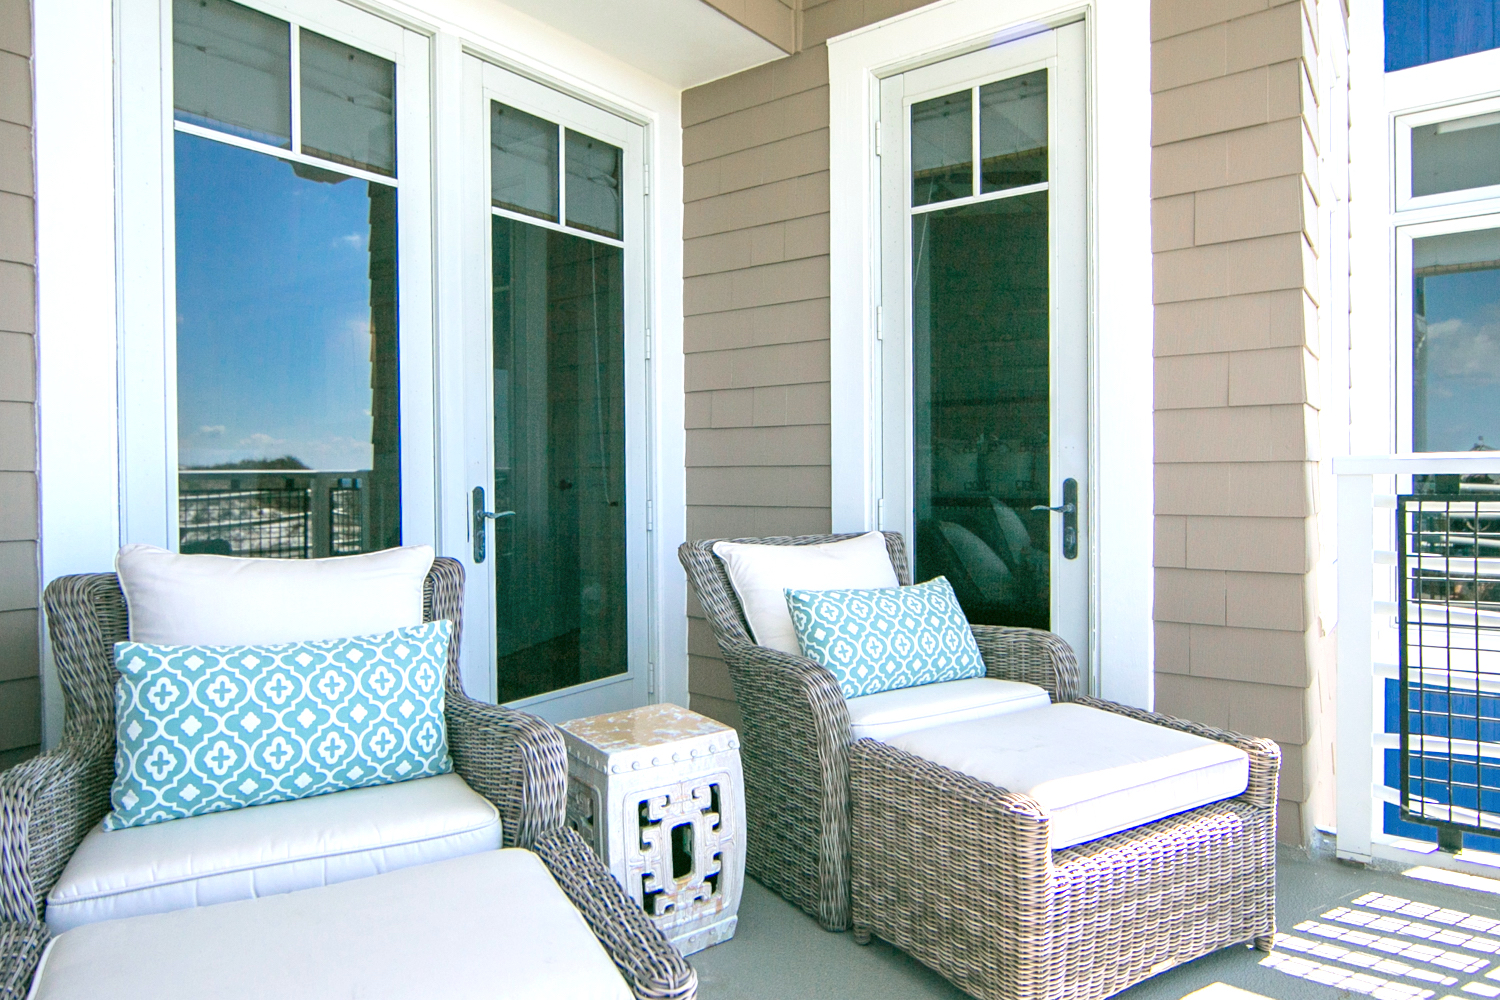 Relax and take in the salty air and read your favorite magazine or book all while the nature of WaterSound entertains you.